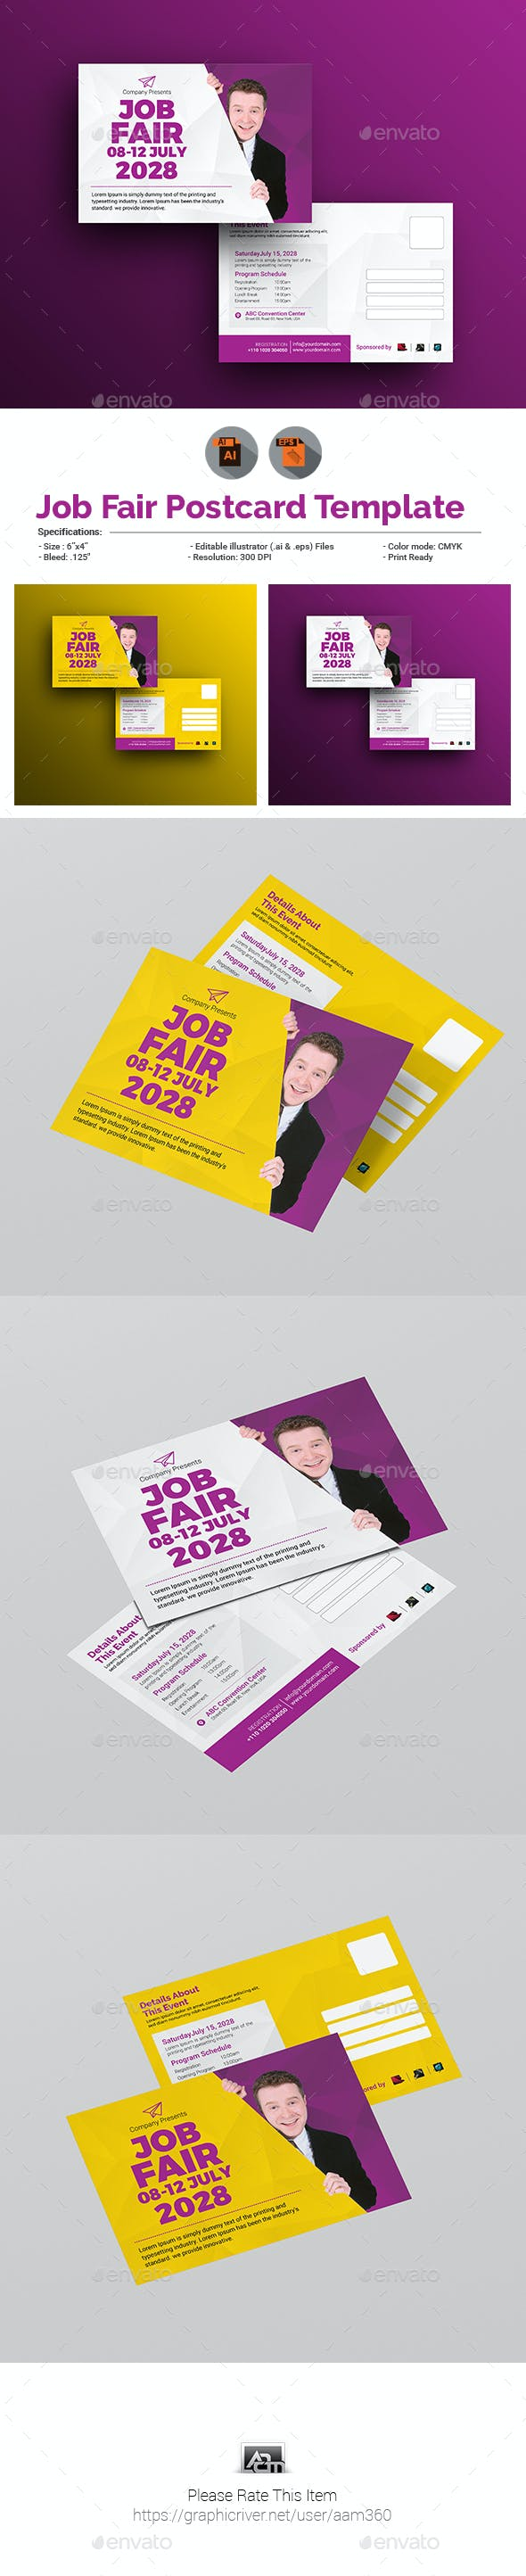 Job Fair Postcard Template